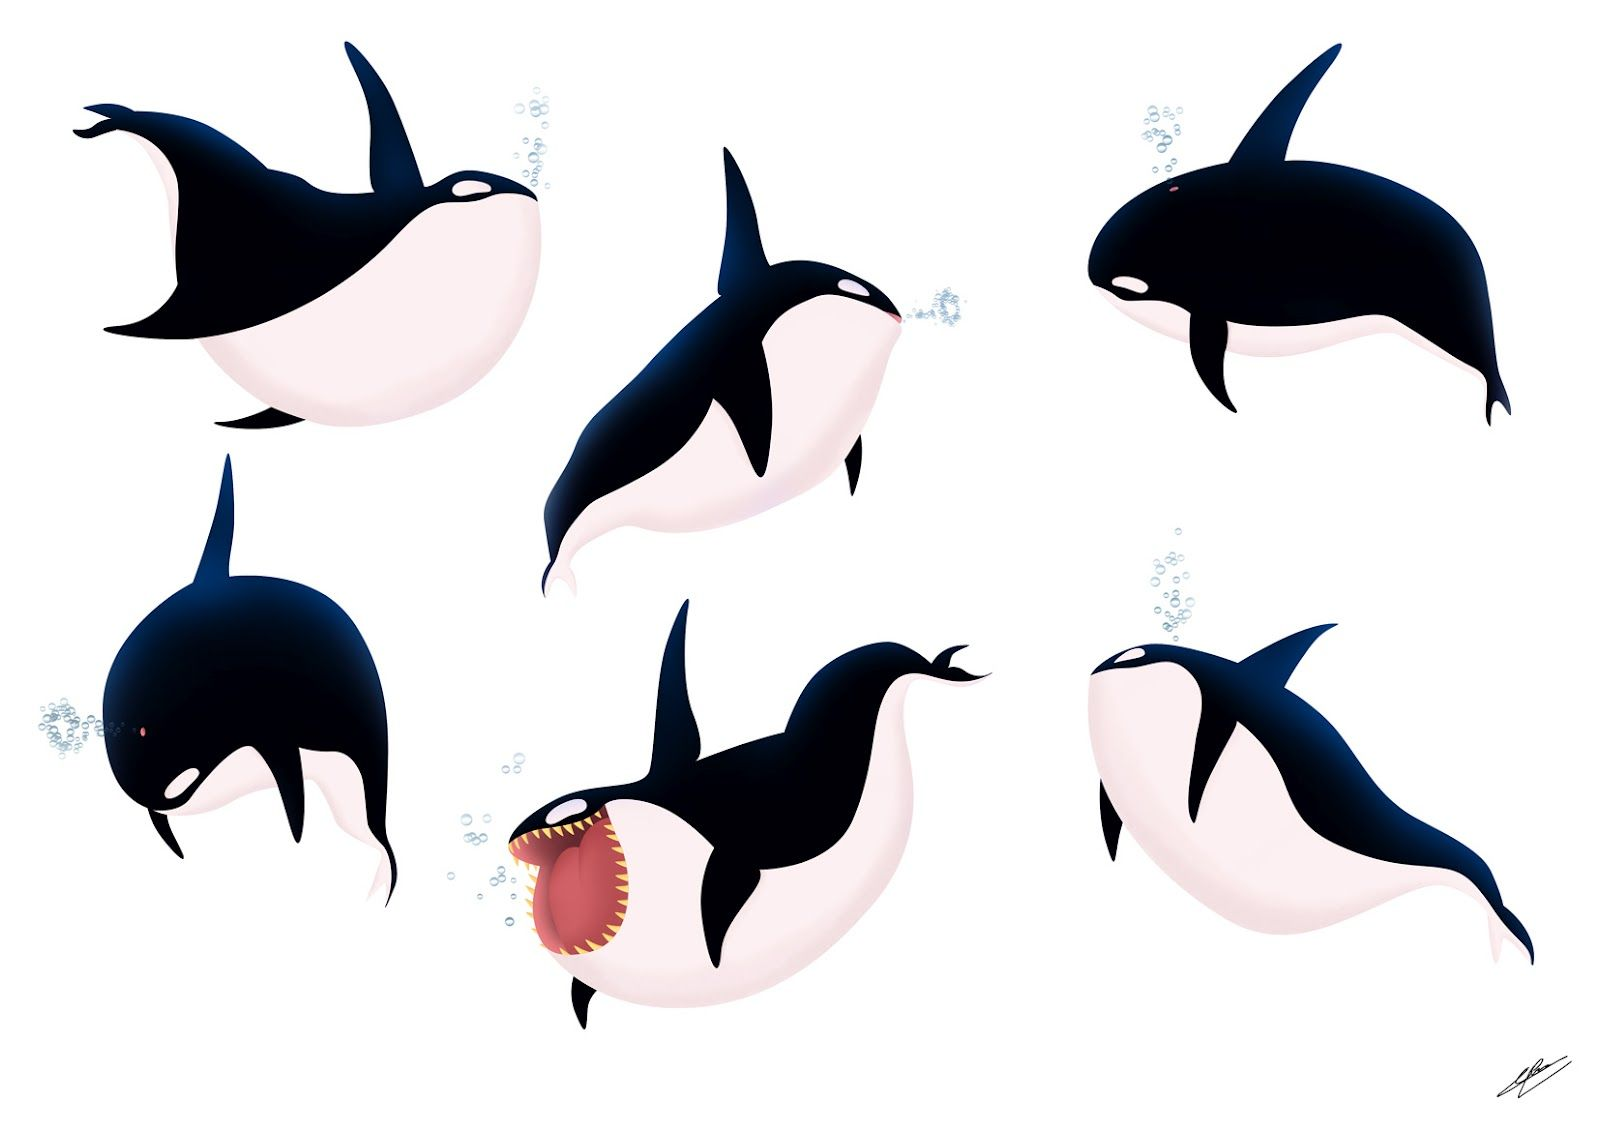 How To Draw A Killer Whale Cute | www.imgkid.com - The ...